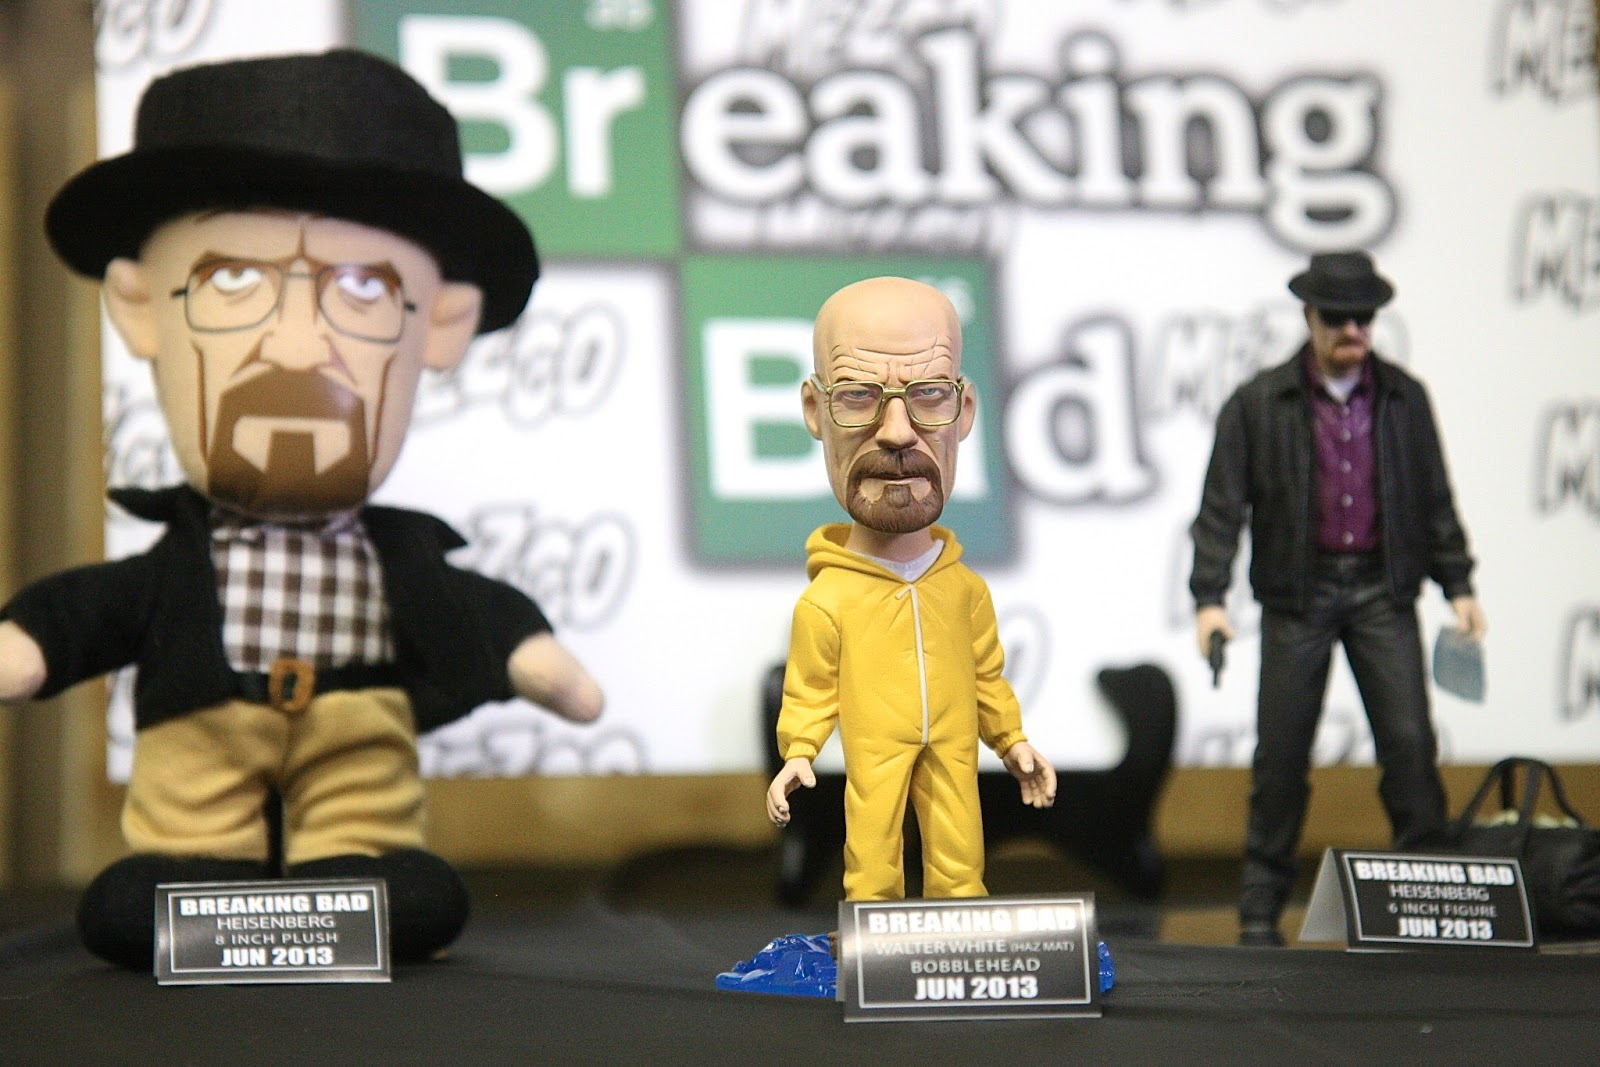 Mezco Previews Breaking Bad Action Figure and Bobblehead ...